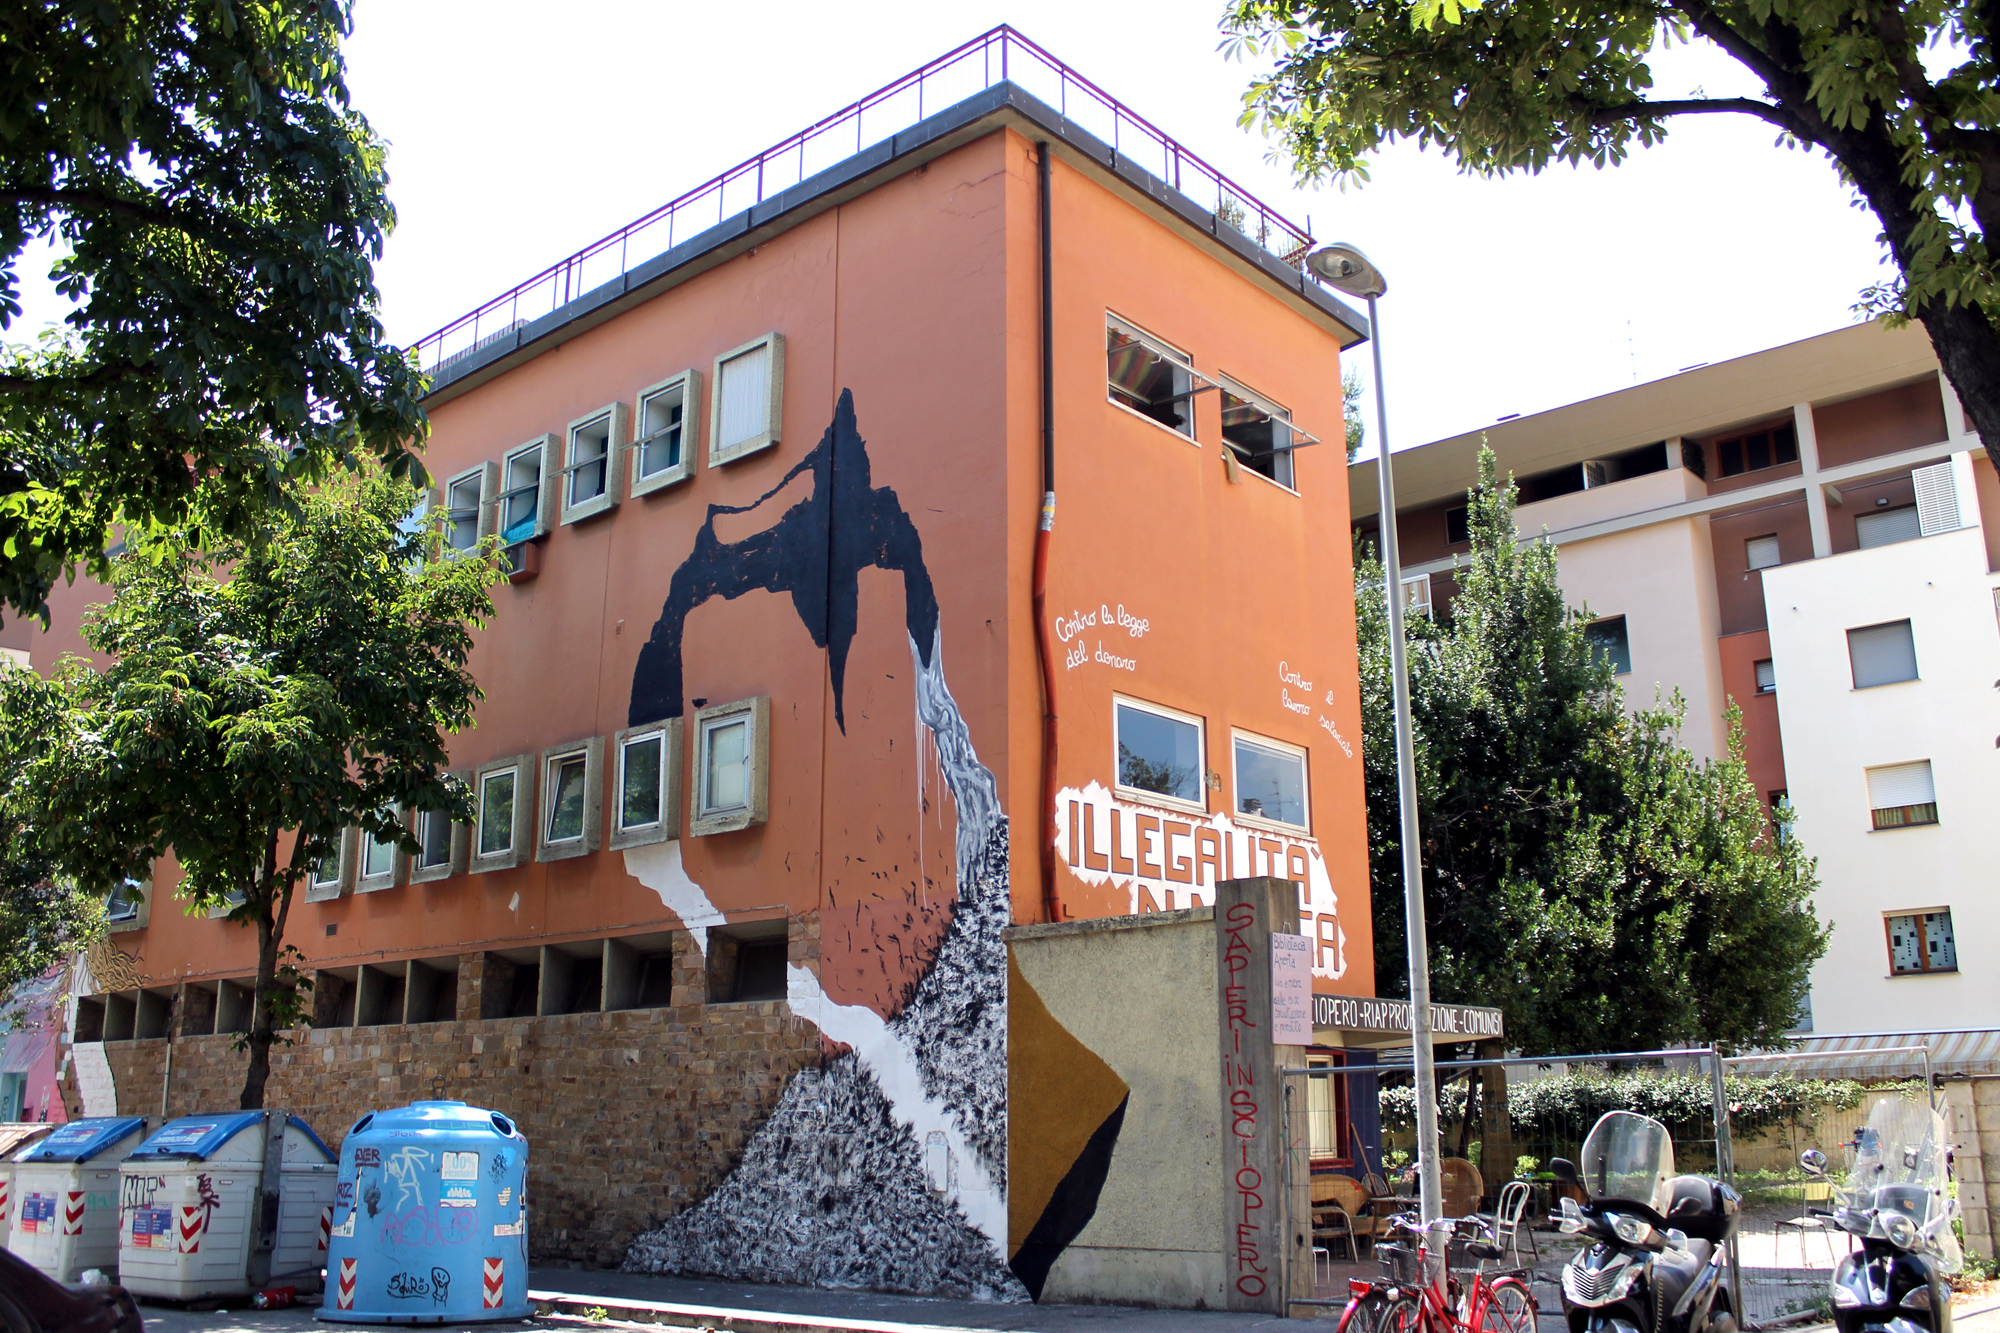 moallaseconda-new-murals-in-pistoia-and-firenze-01